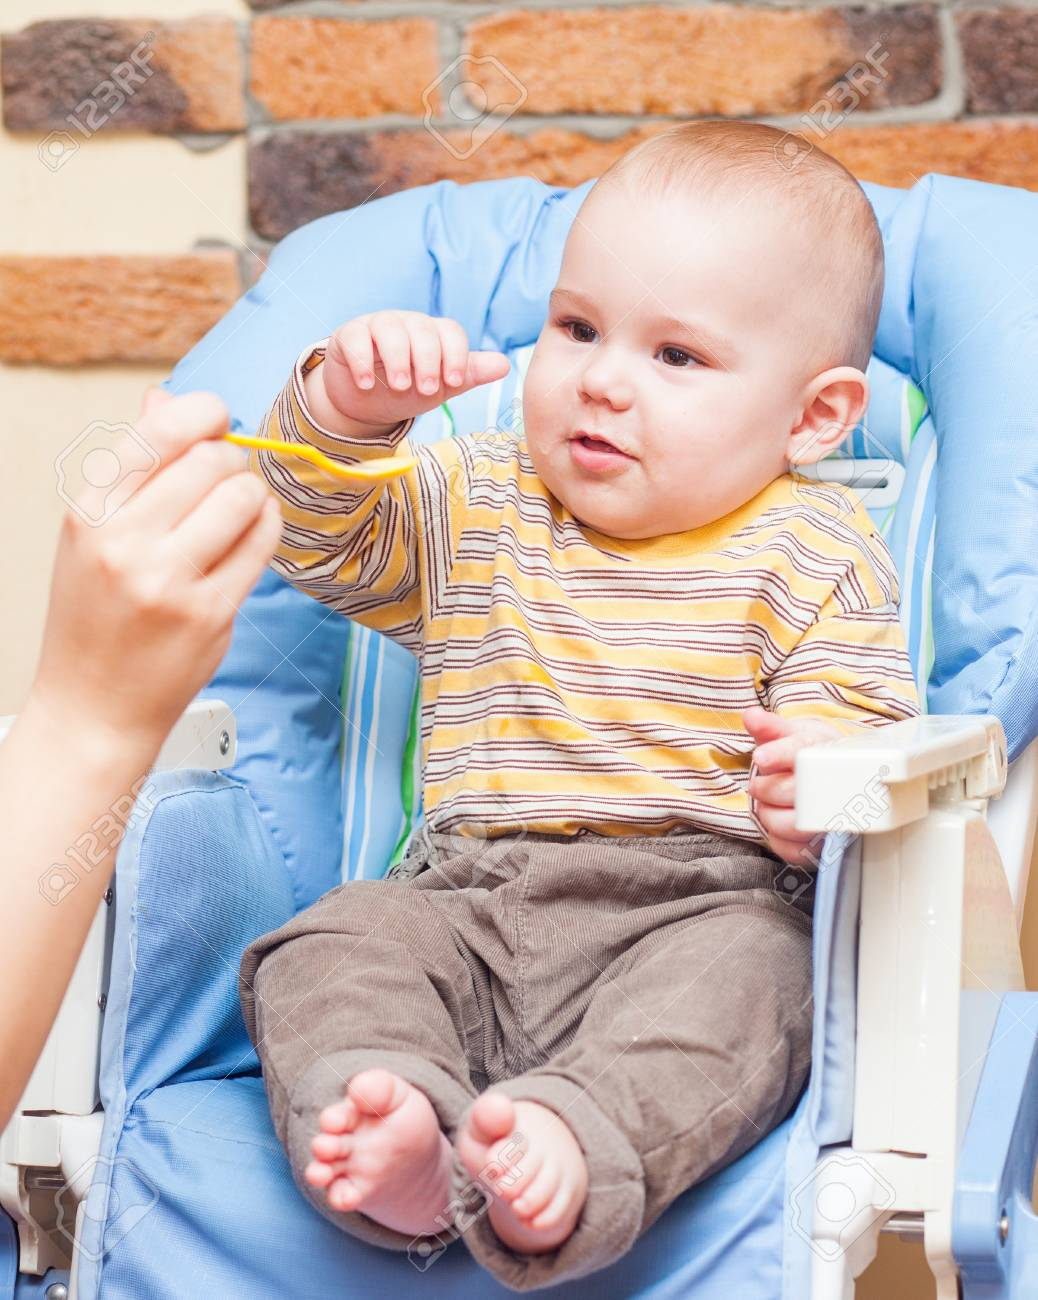 Baby is being fed by her mum sitting on   high chair Stock Photo - 17181990